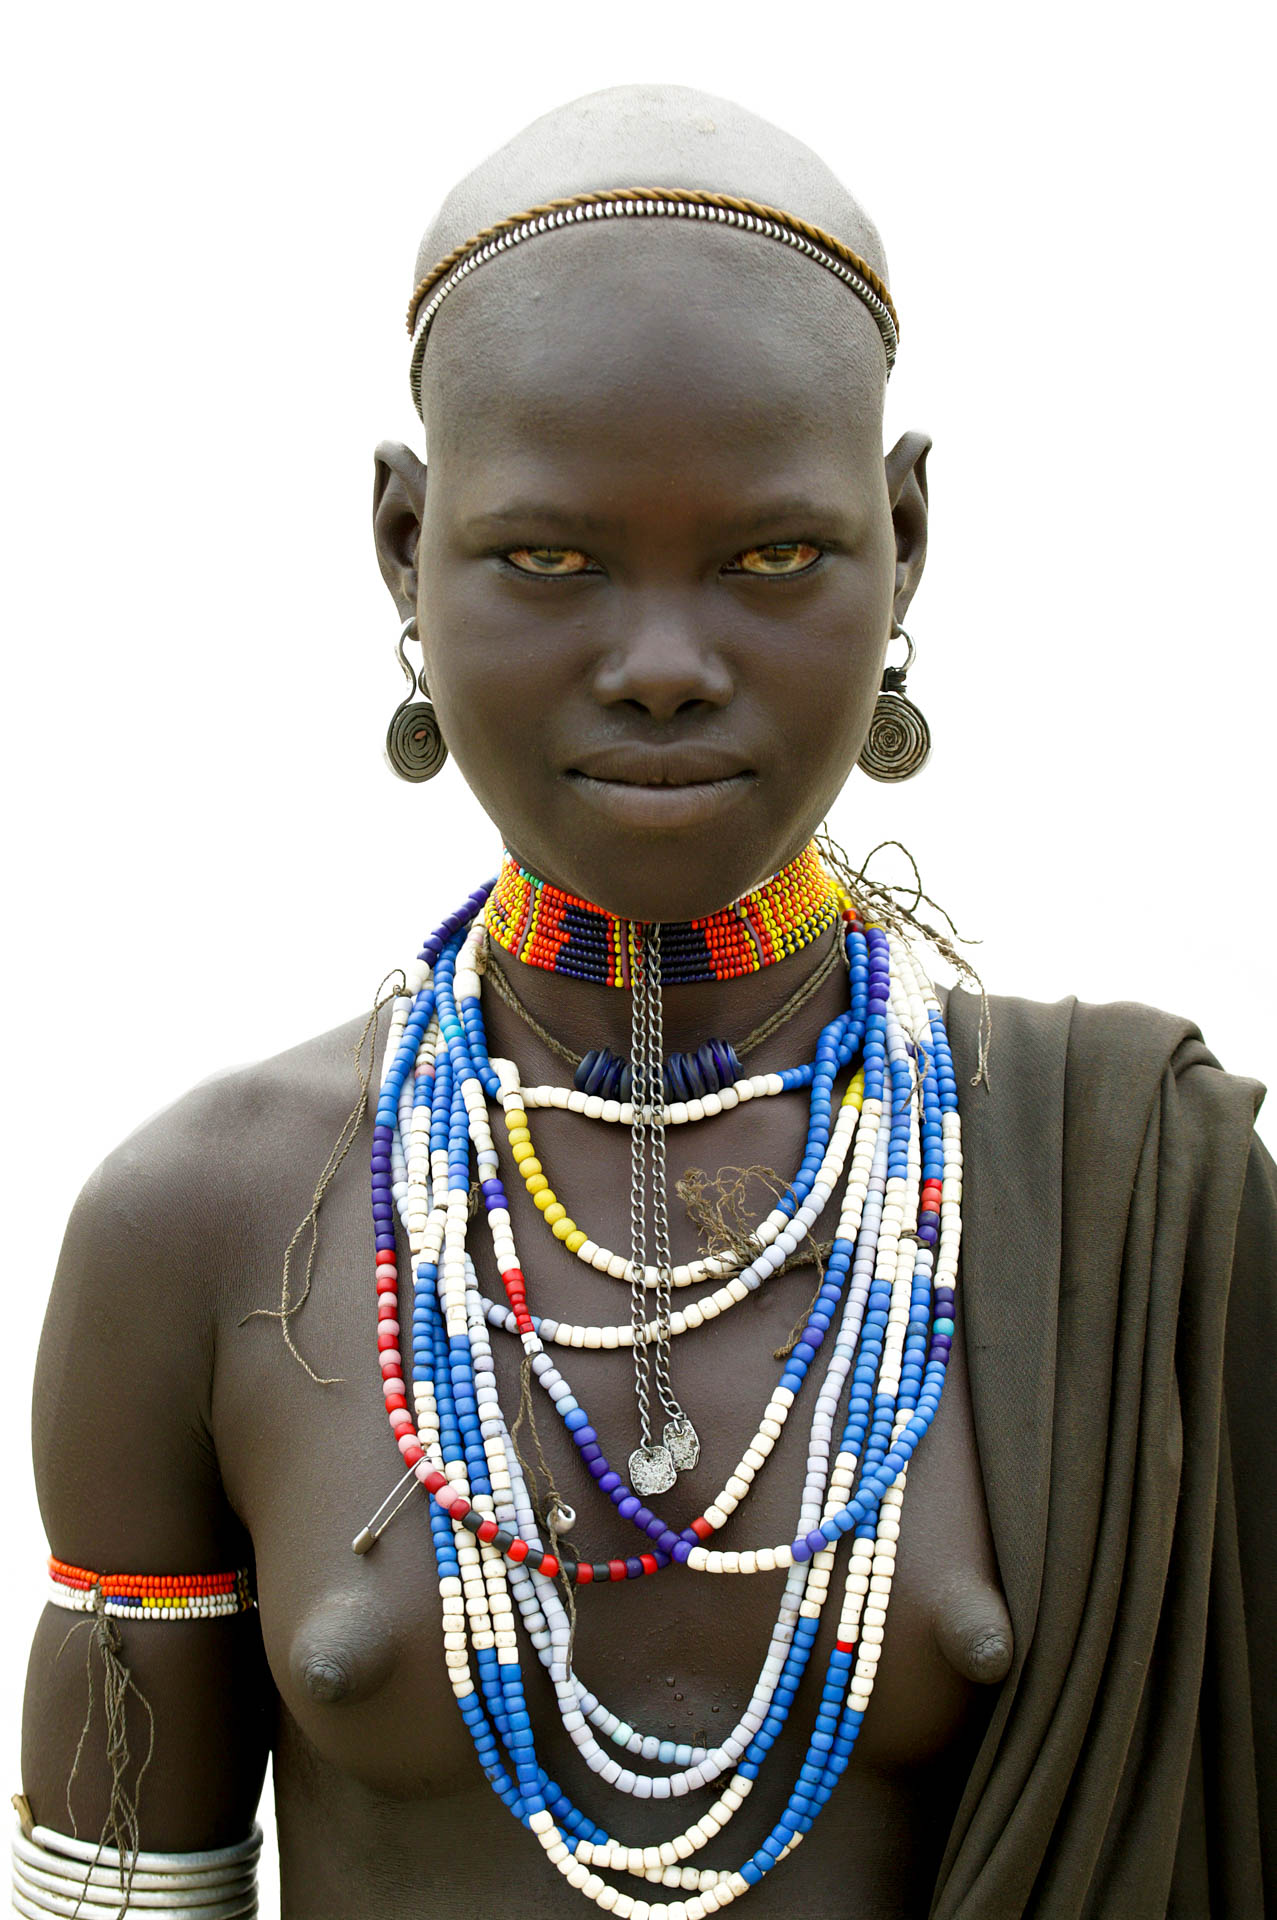 Omo Valley, Ethiopia - June 2003African Beauty: portrait of people of Erbore tribe from in the Omo Valley.© GIANNI GIANSANTI